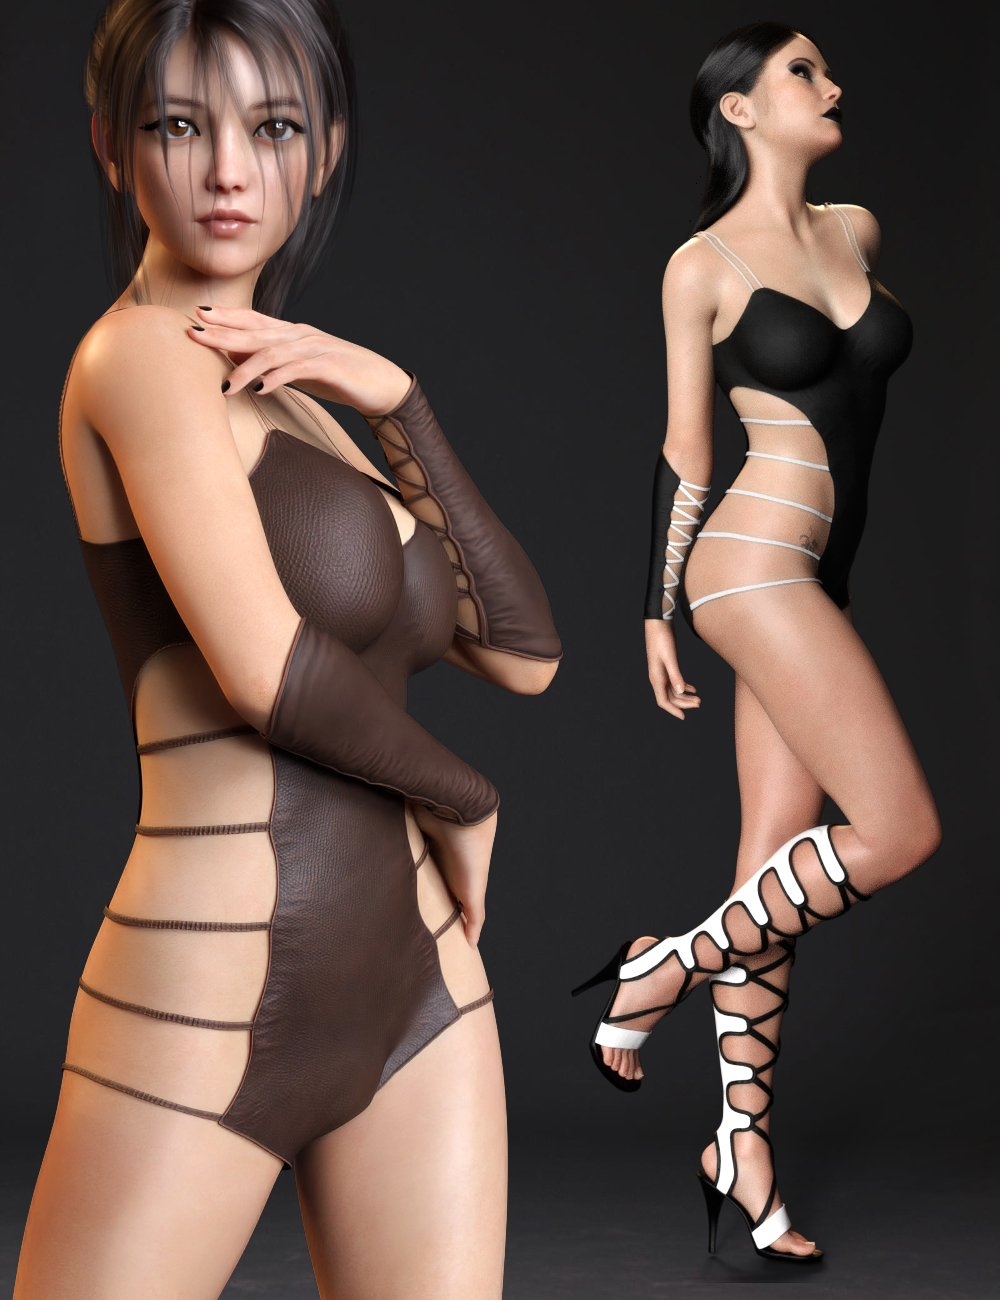 Strappy Suit Set for Genesis 8 and 8.1 Females by: Mytilus3dLab, 3D Models by Daz 3D